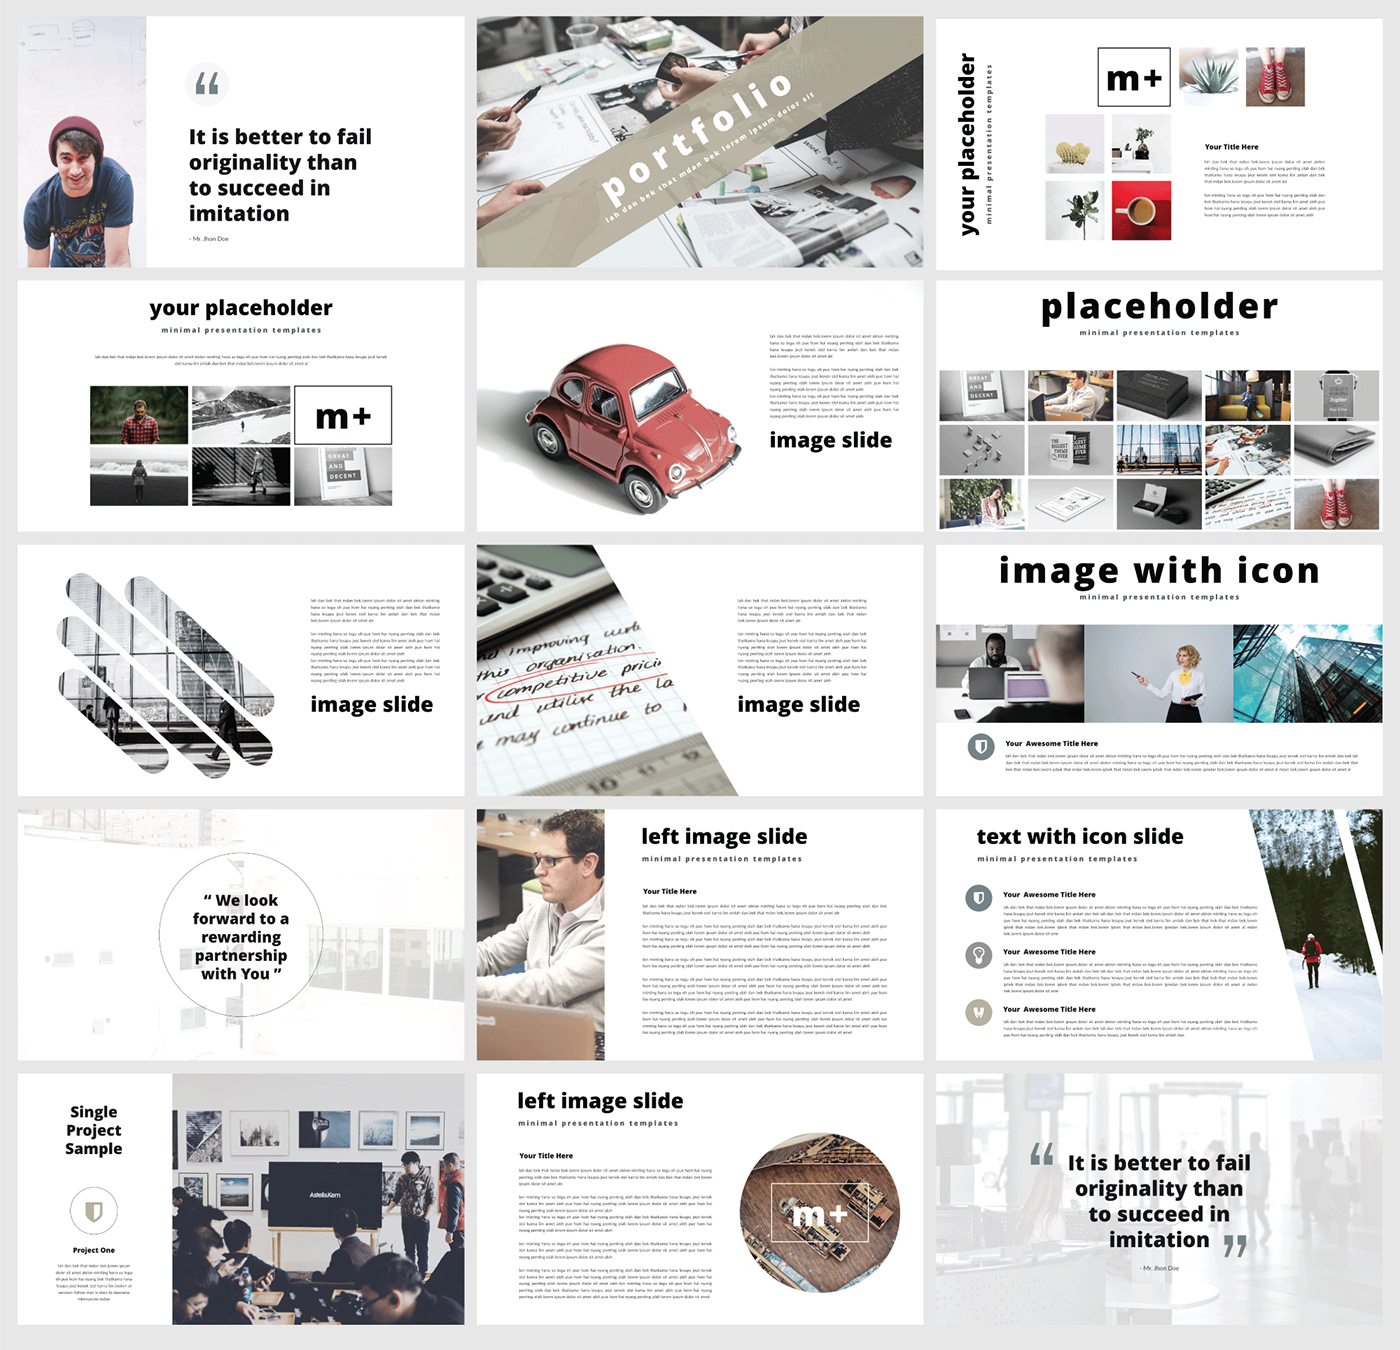 Free multi powerpoint template on behance has been present at our place patherostudio presentation template which you can download it for free if you need a powerpoint template for making your alramifo Image collections